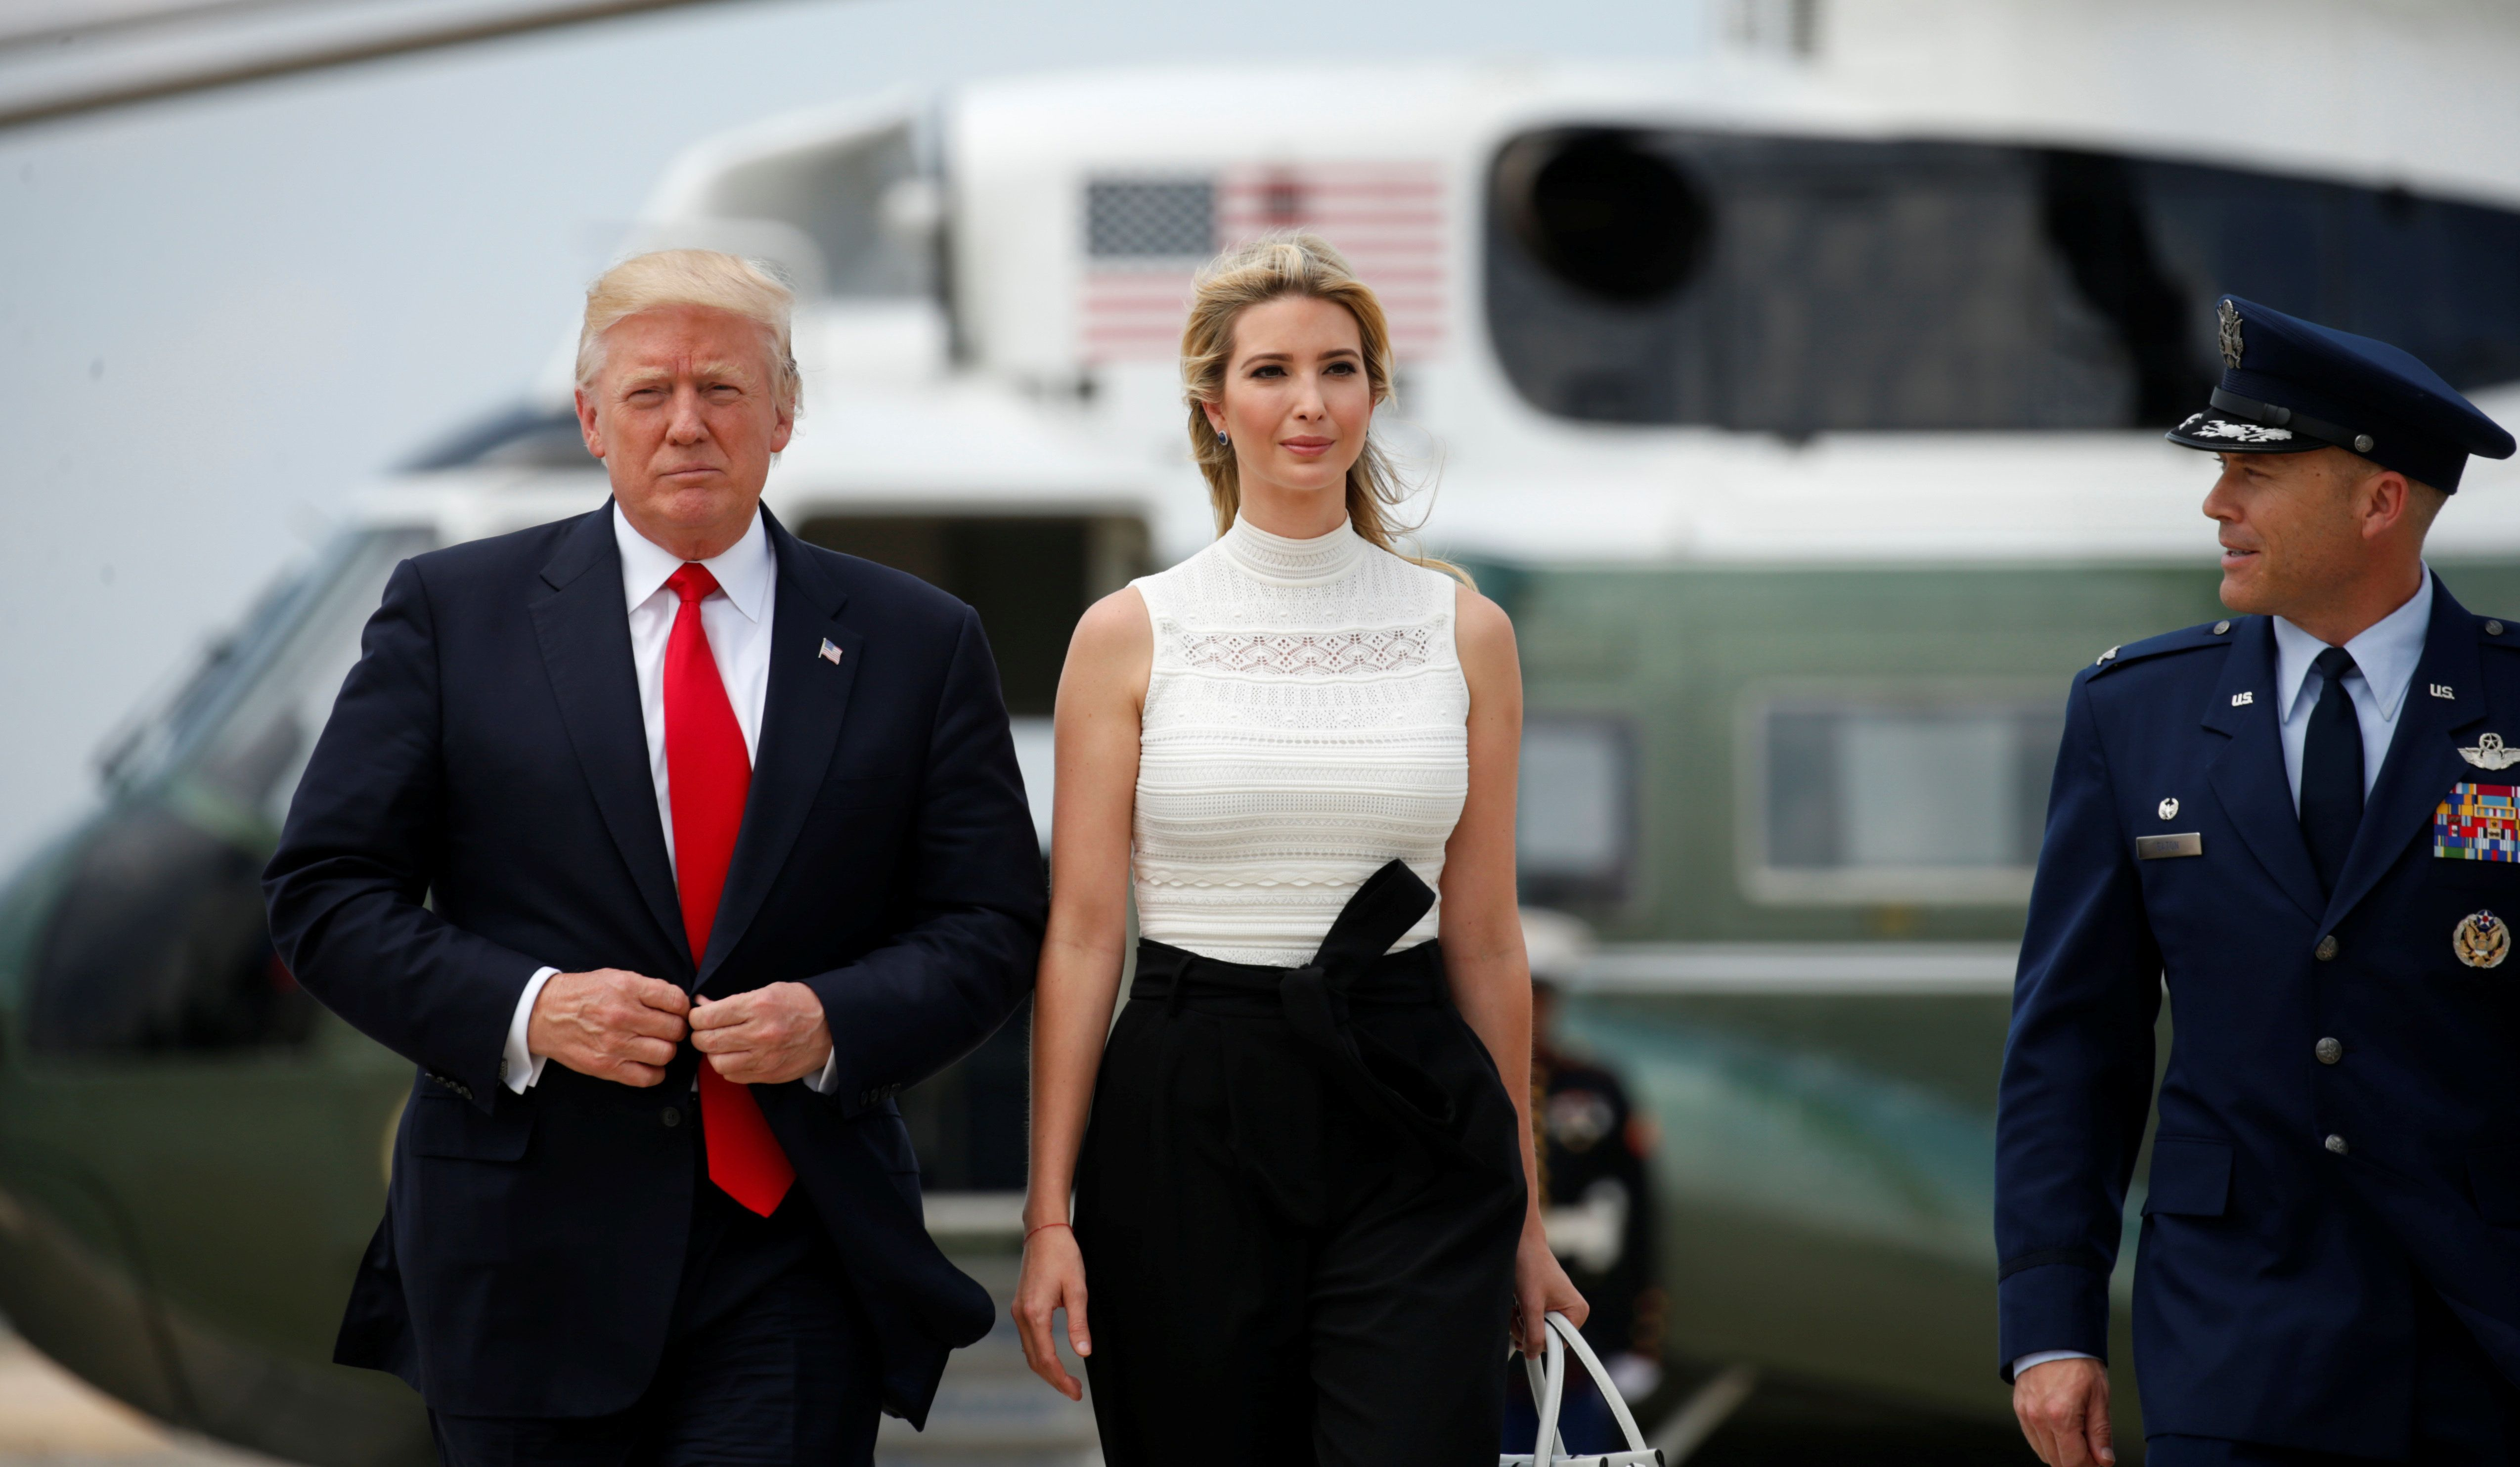 Ivanka Trump Finally Says What Her Father Won't On Charlottesville - But It Looks Like It's Too